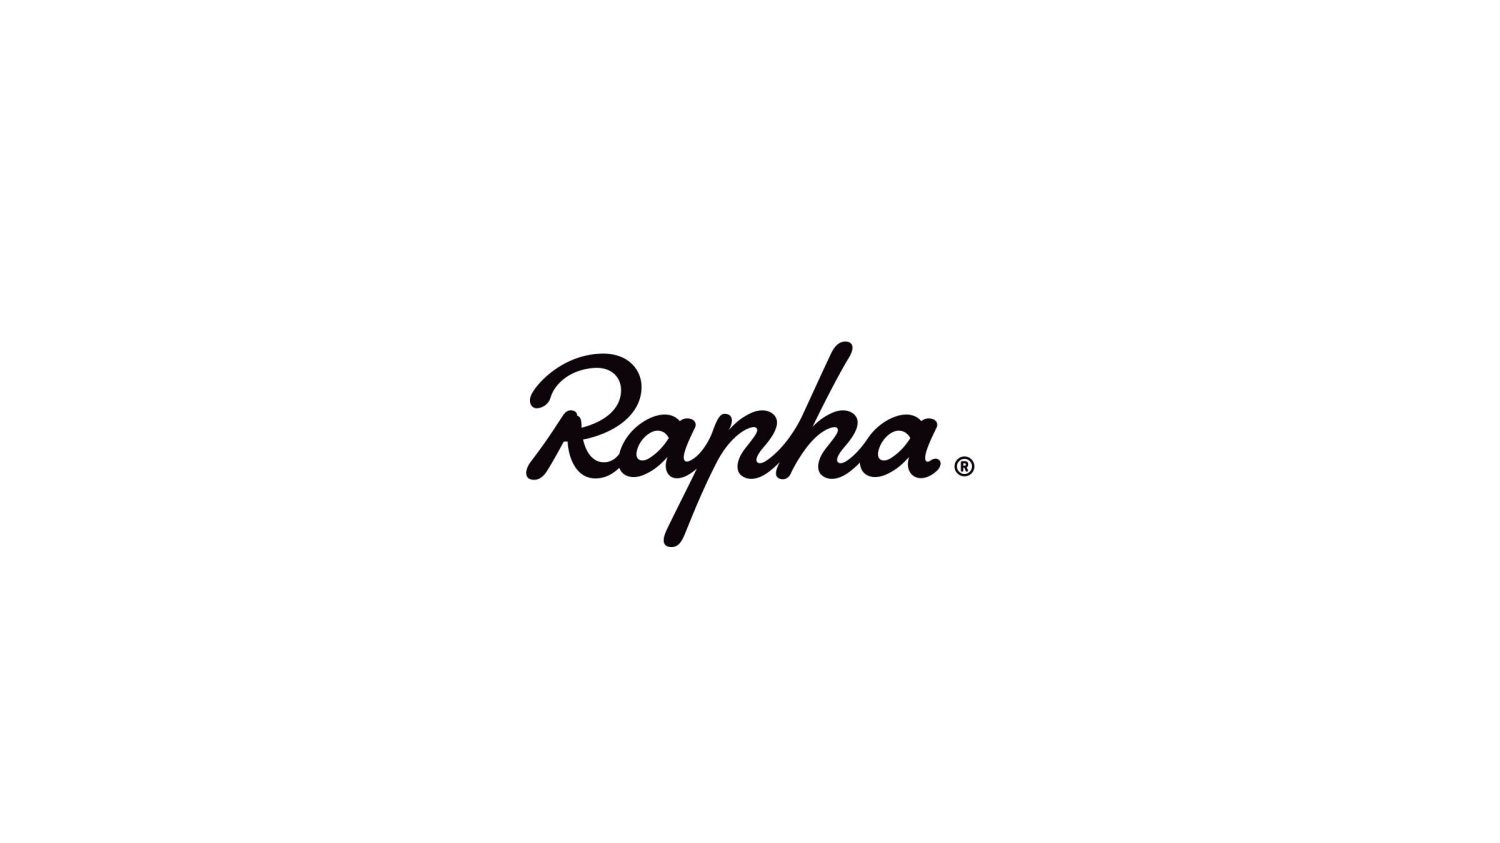 INFINITI LAB | In partnership with Rapha